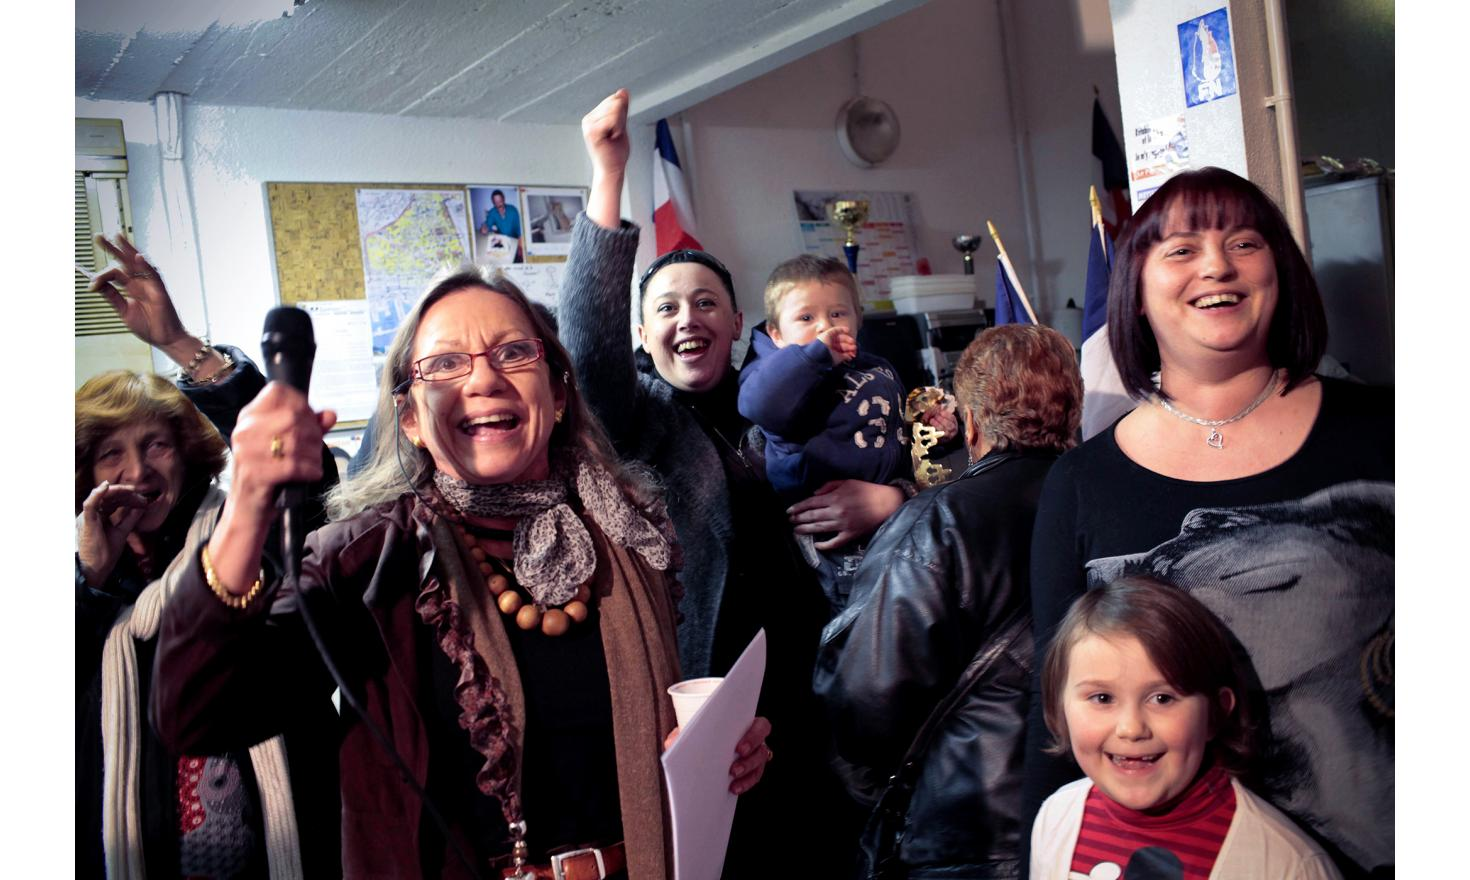 Marseille, January 26, 2011. The Only office of the National Front in Marseille, belong to Marie-Claude Aucouturier. She appeared at the cantonal elections.